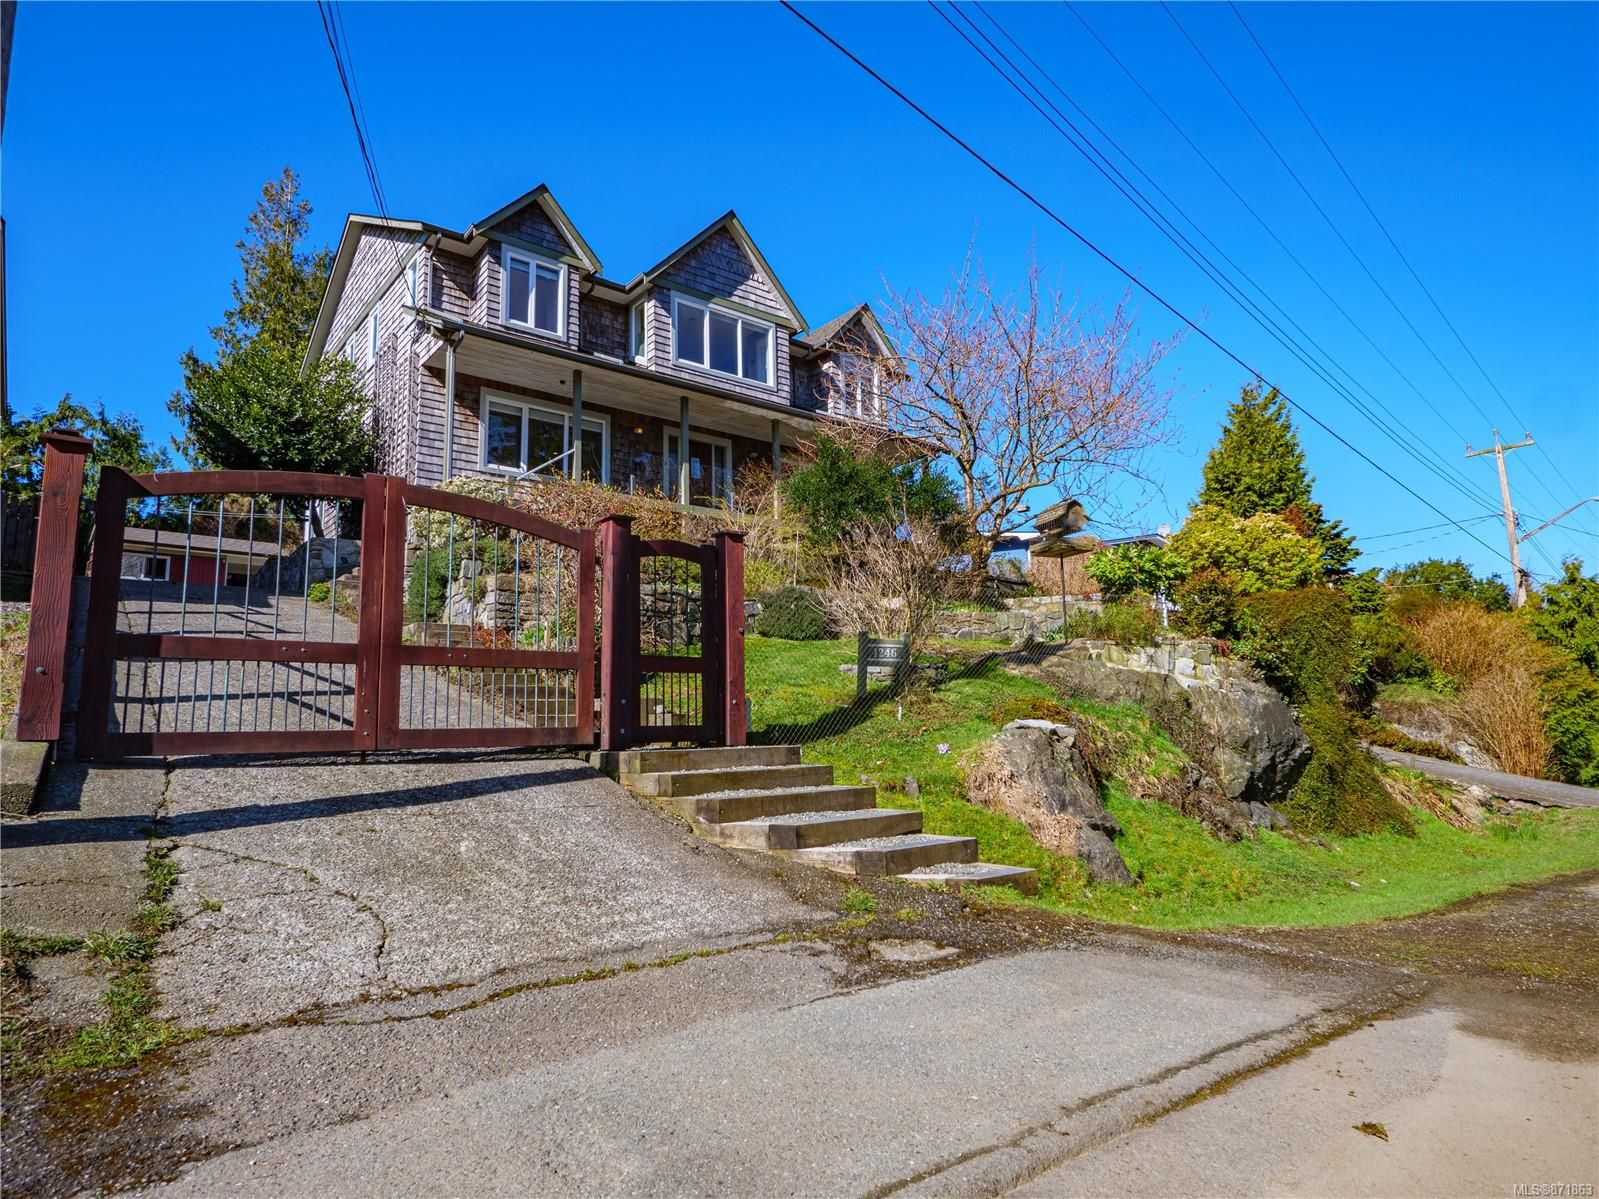 Main Photo: 1246 Helen Rd in : PA Ucluelet House for sale (Port Alberni)  : MLS®# 871863